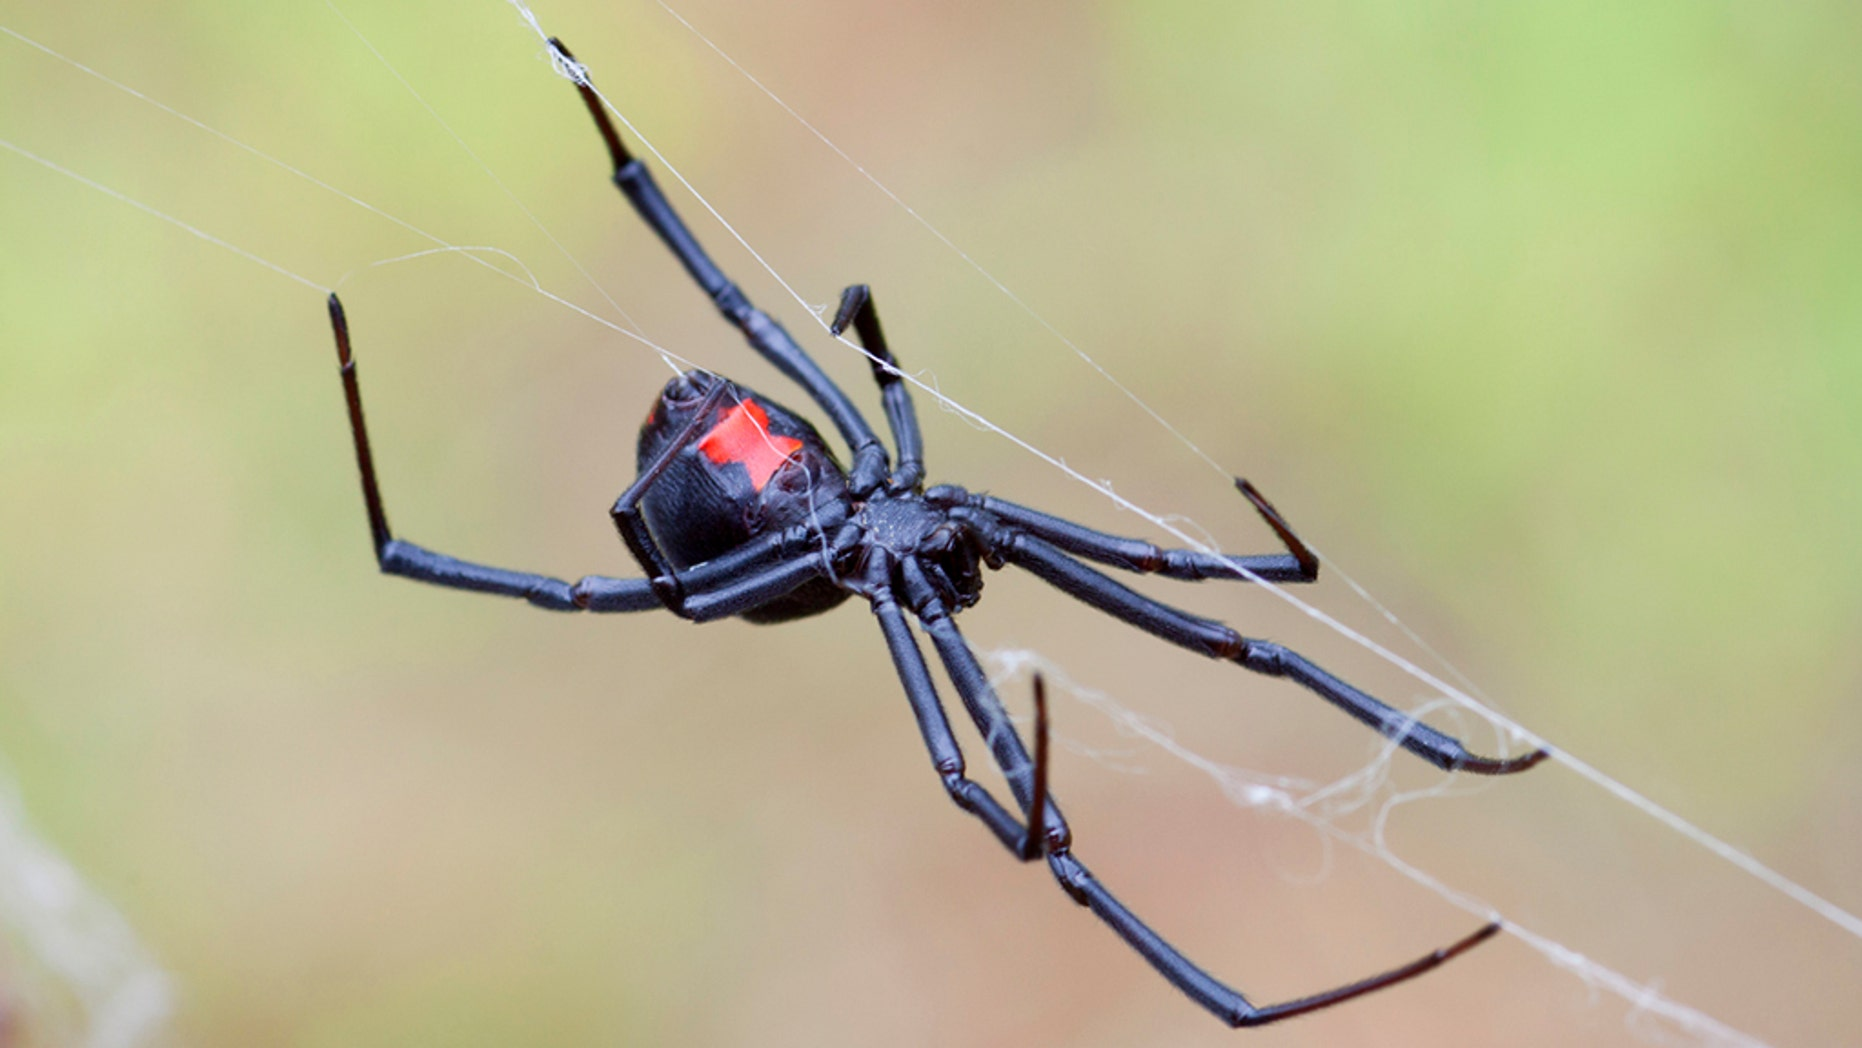 Man uses blowtorch to kill black widow spiders, lights house on fire